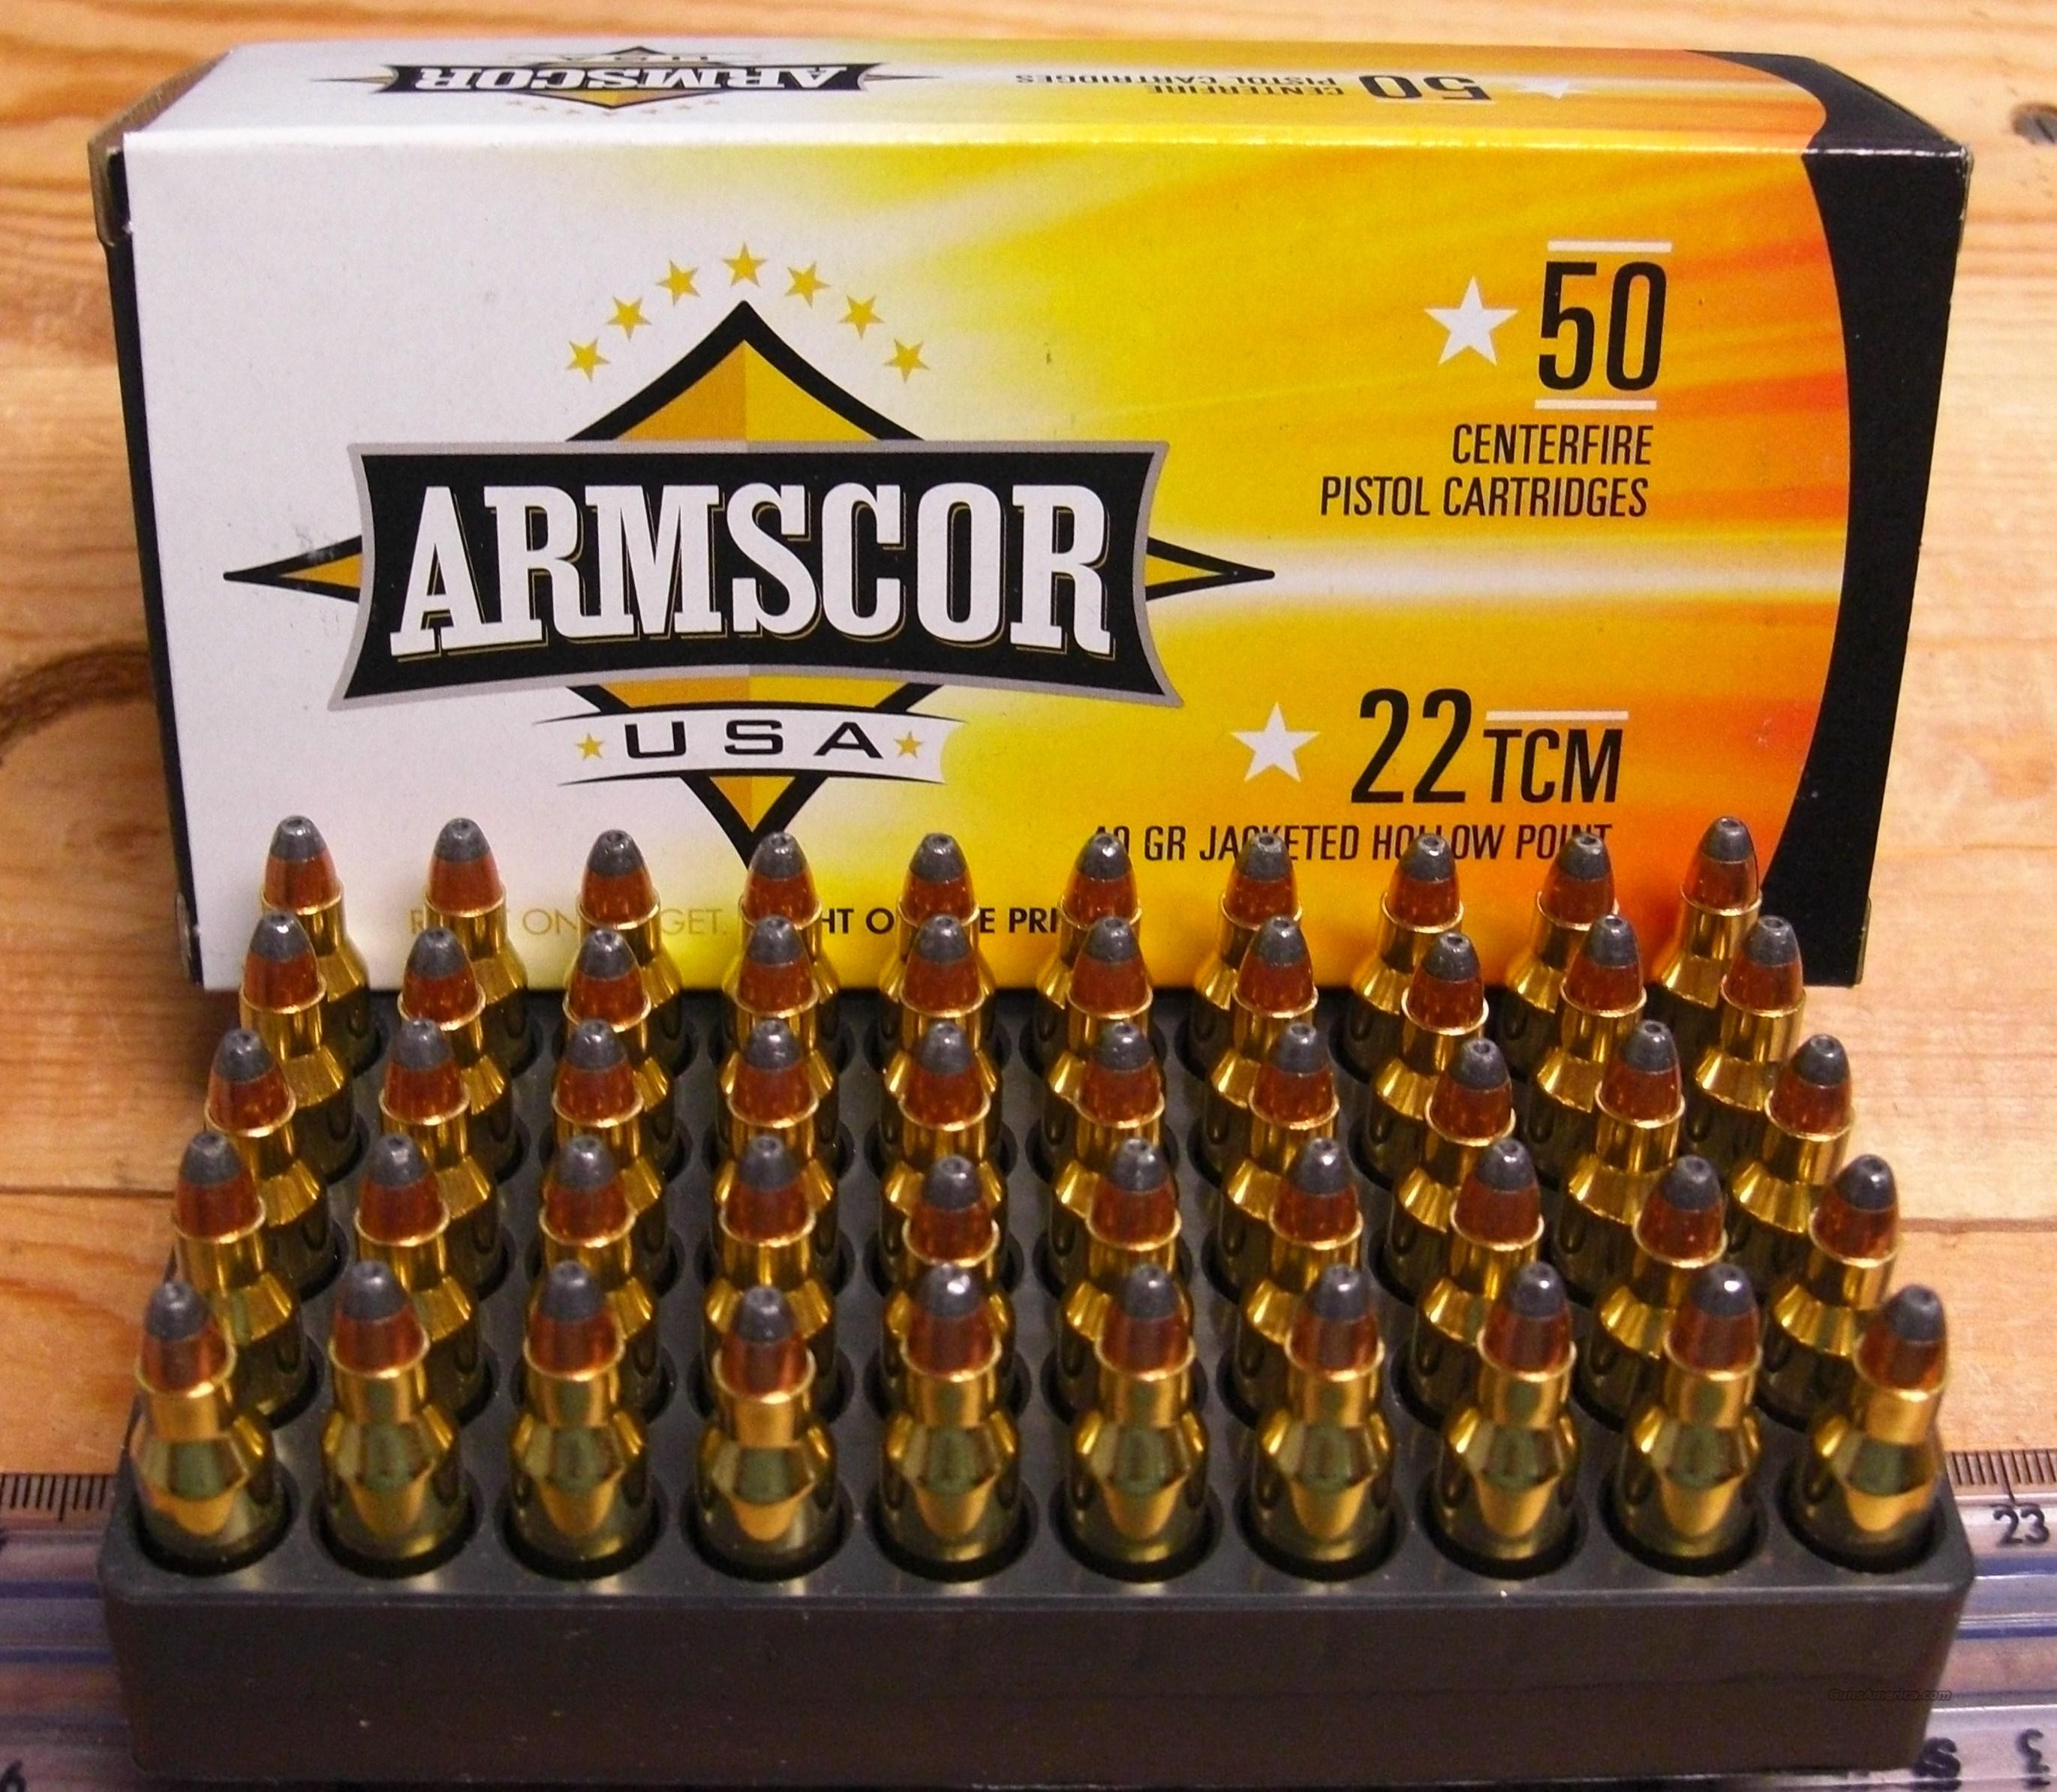 Armscor 22TCM ammo  Non-Guns > Ammunition